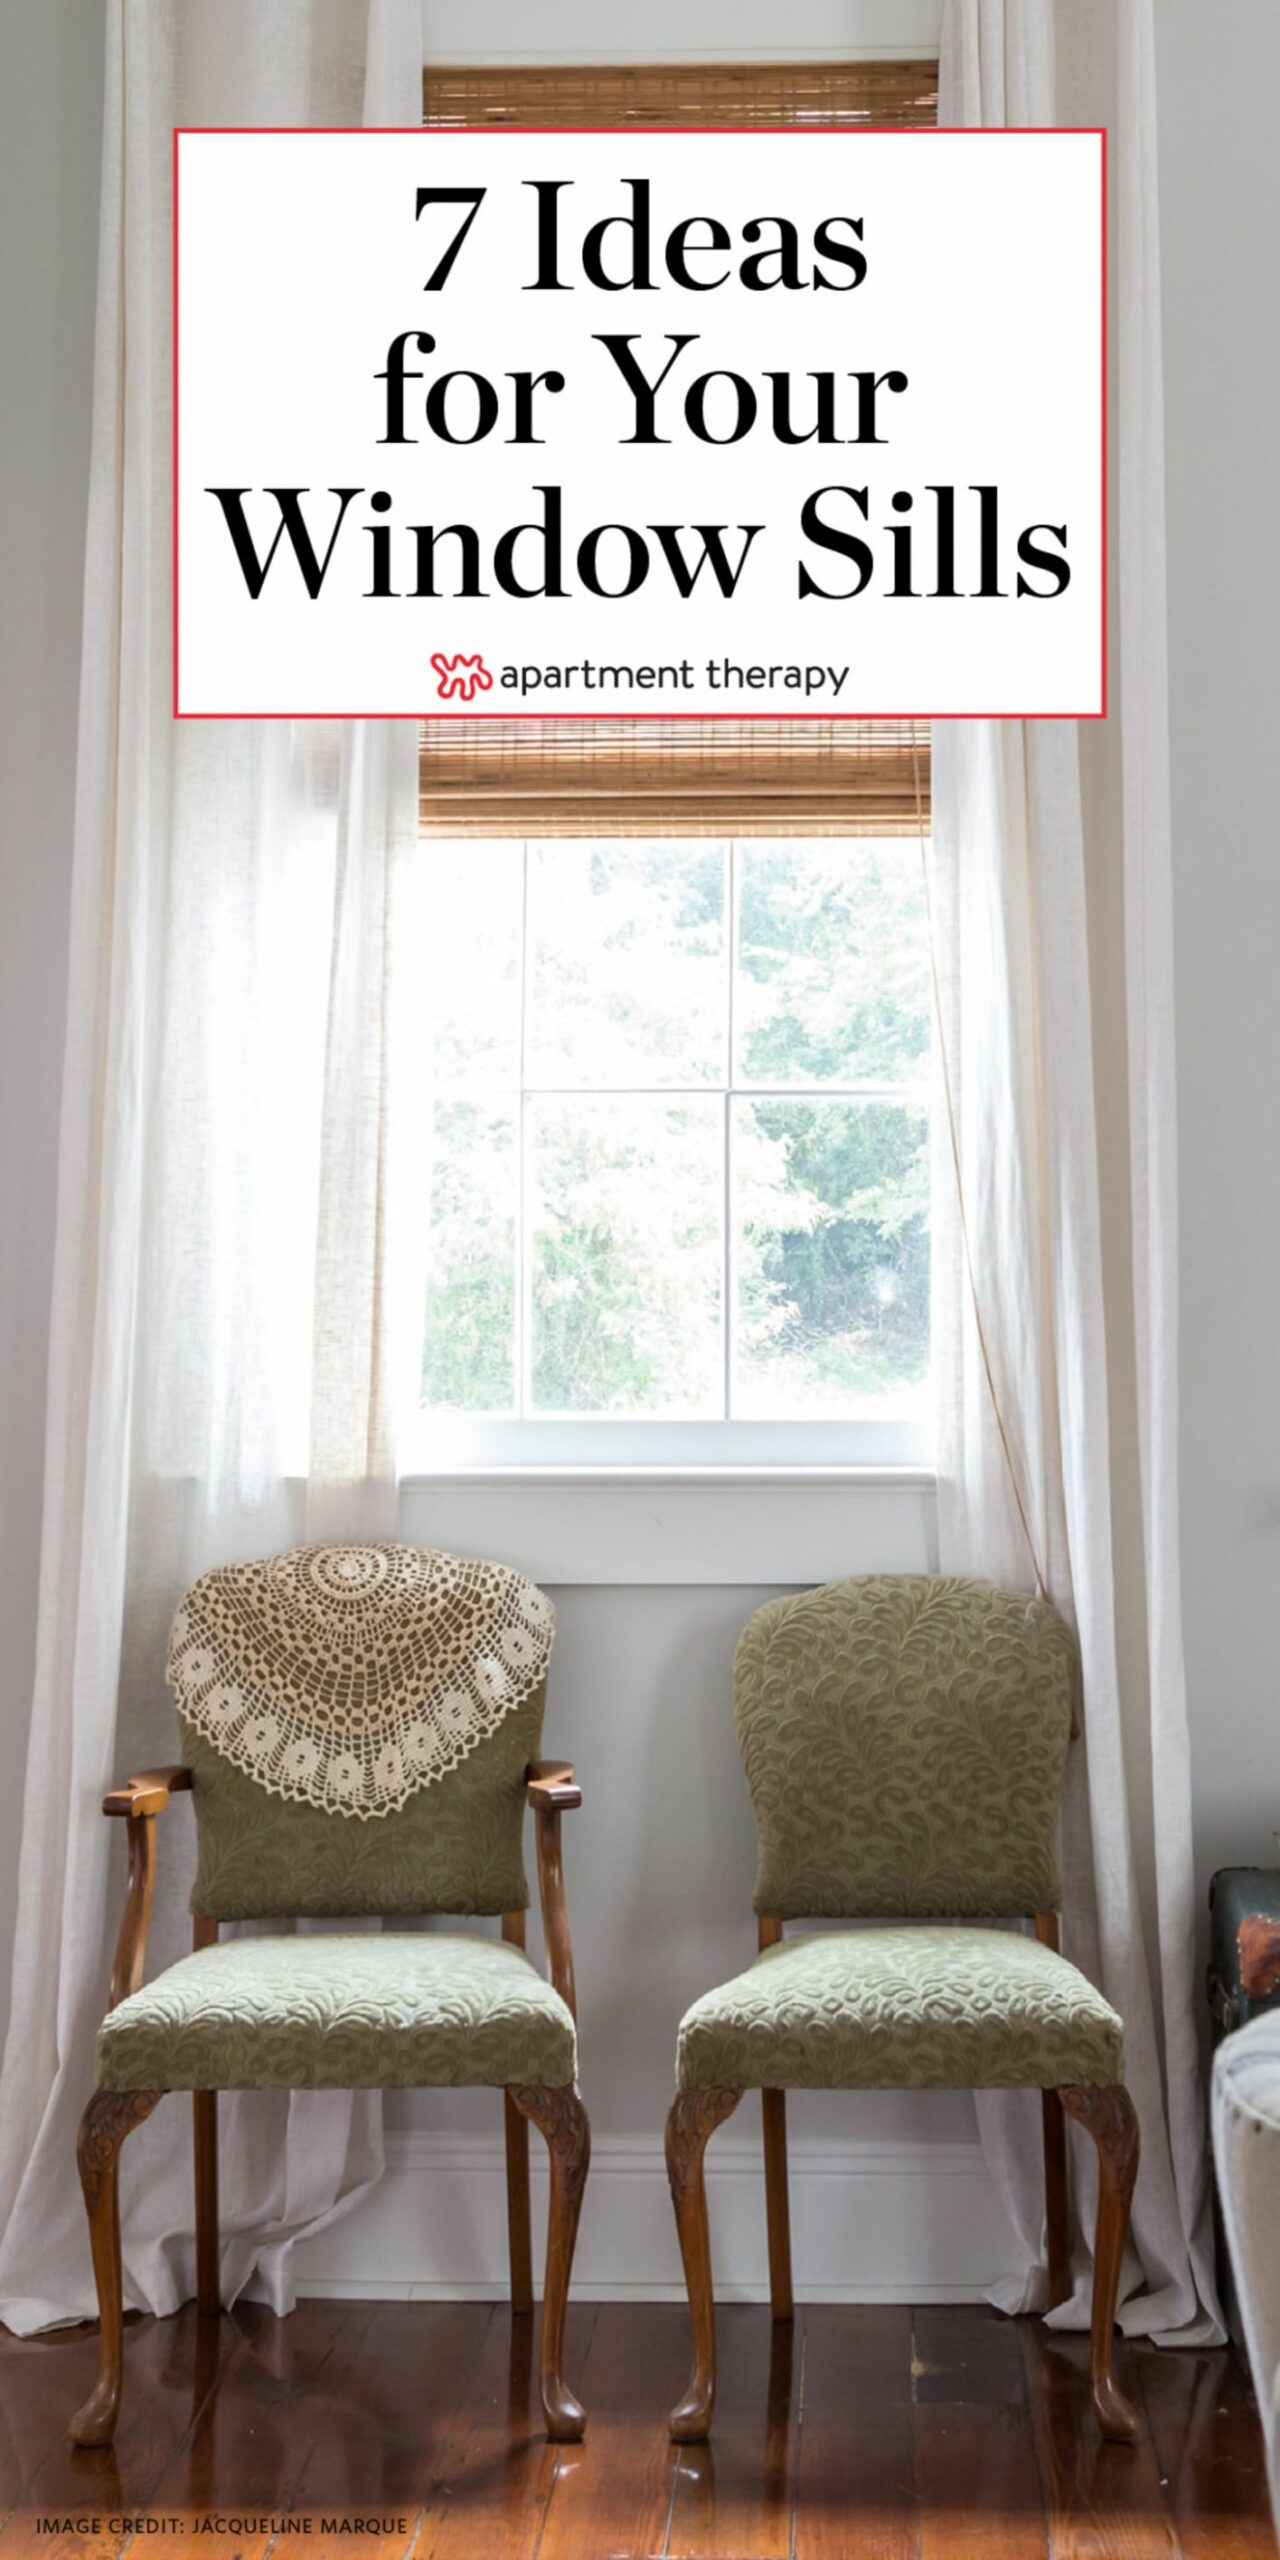 Window Sill Ideas | Apartment Therapy